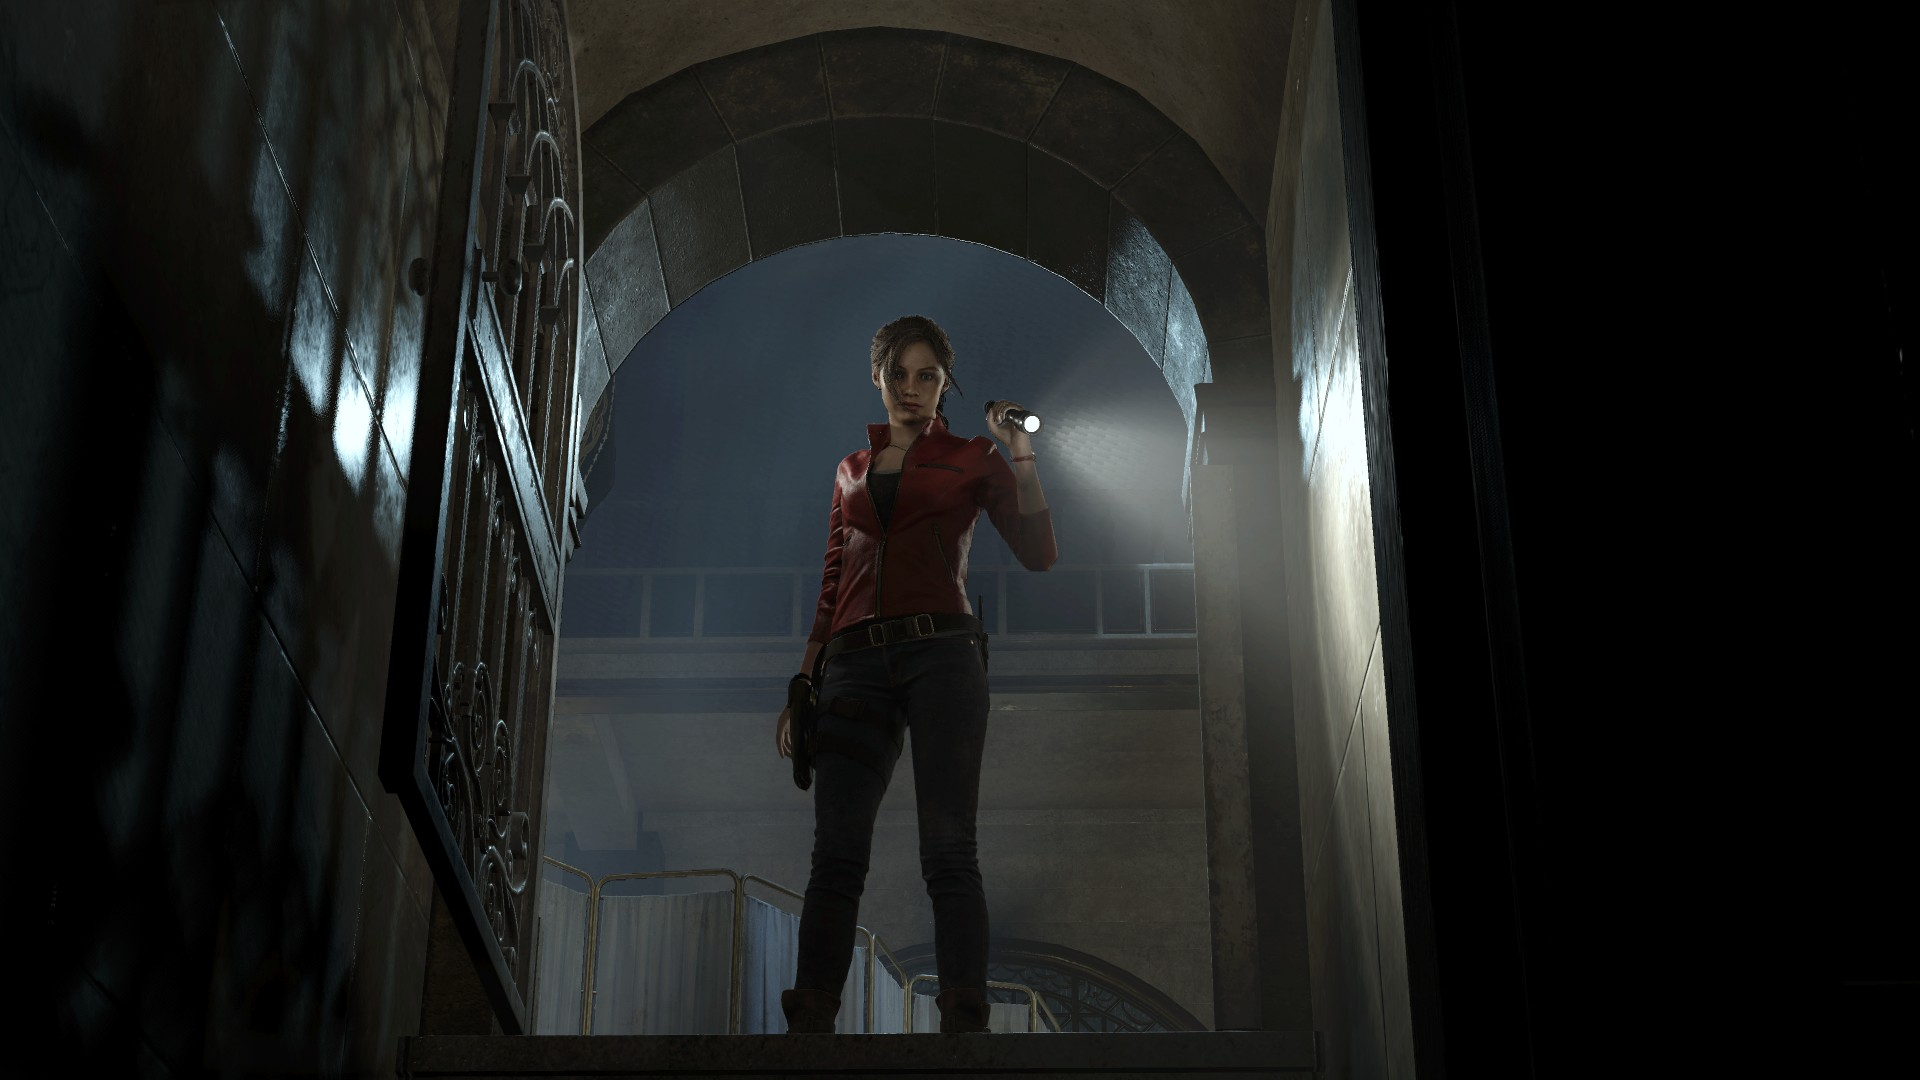 Claire Redfield using a torch to look into a crypt of some sort.